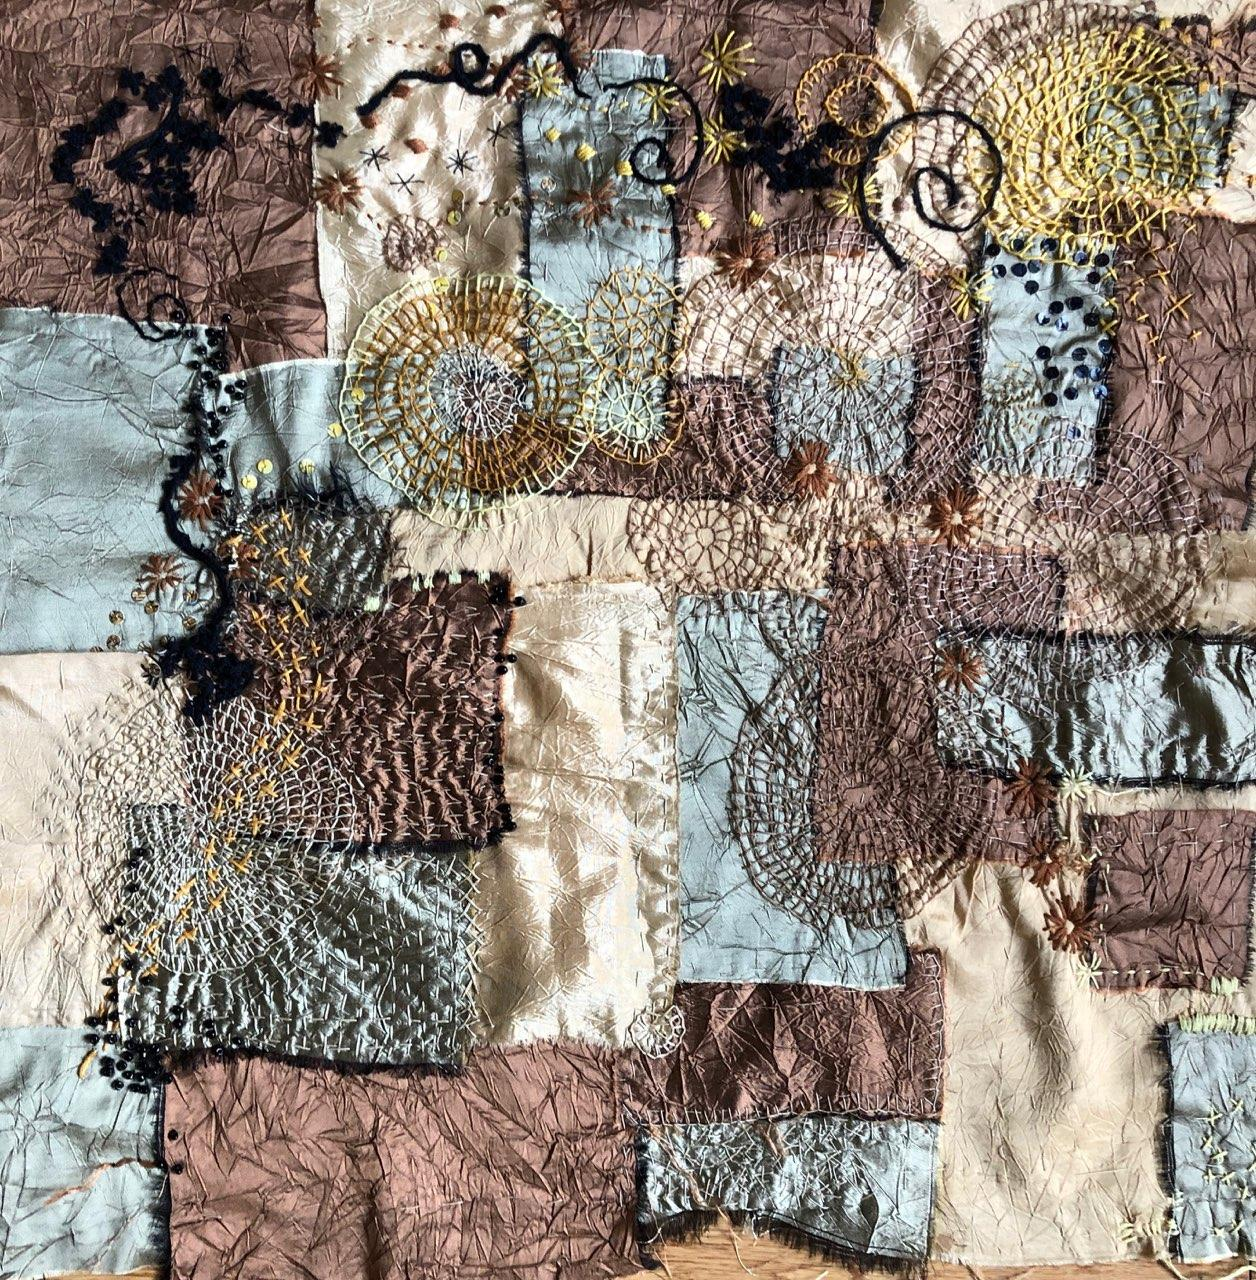 Collaborative work by Kay Portmess and Maura Harrison (MG: April 2020)